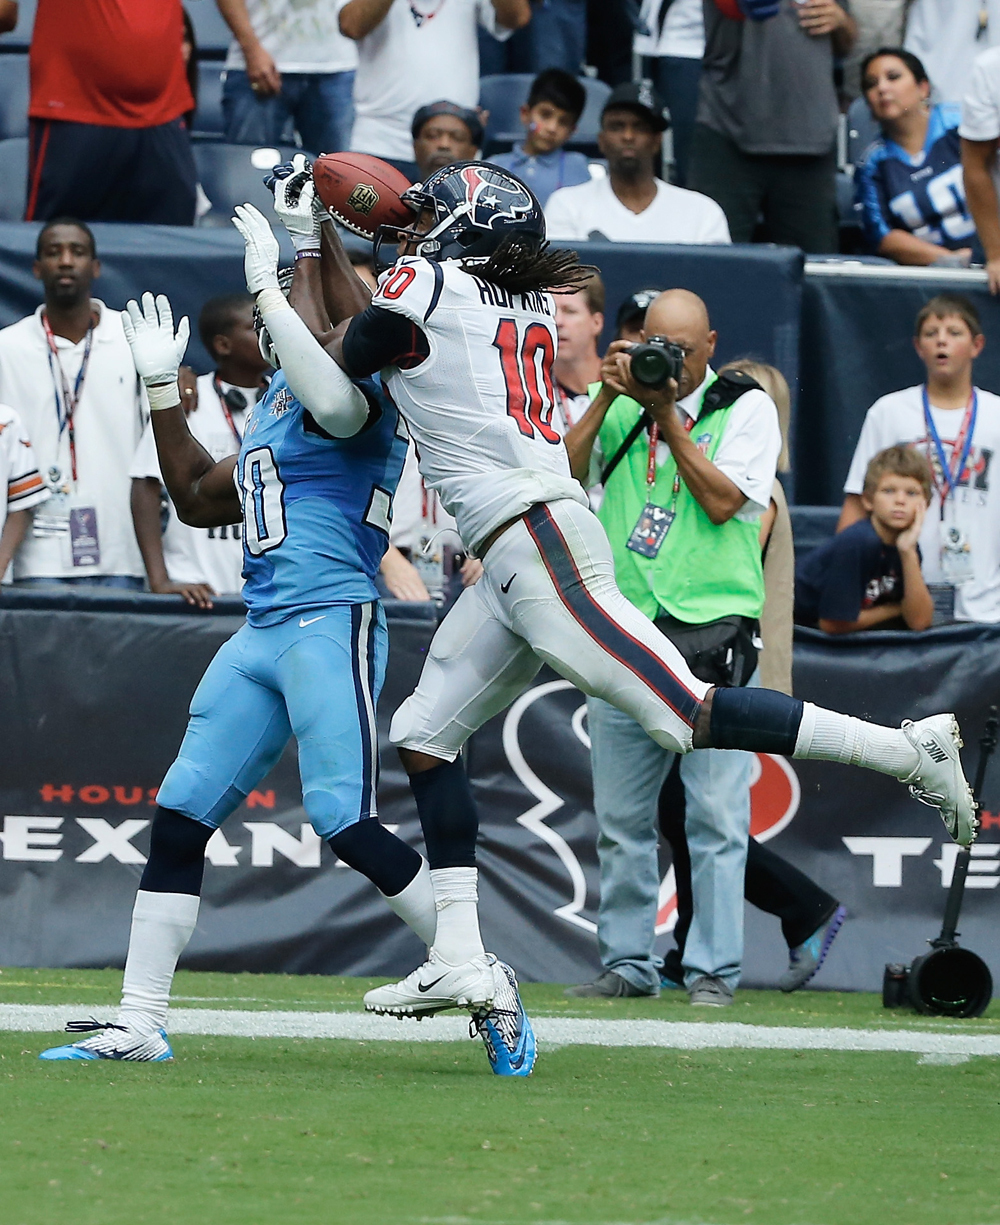 The facemask catch